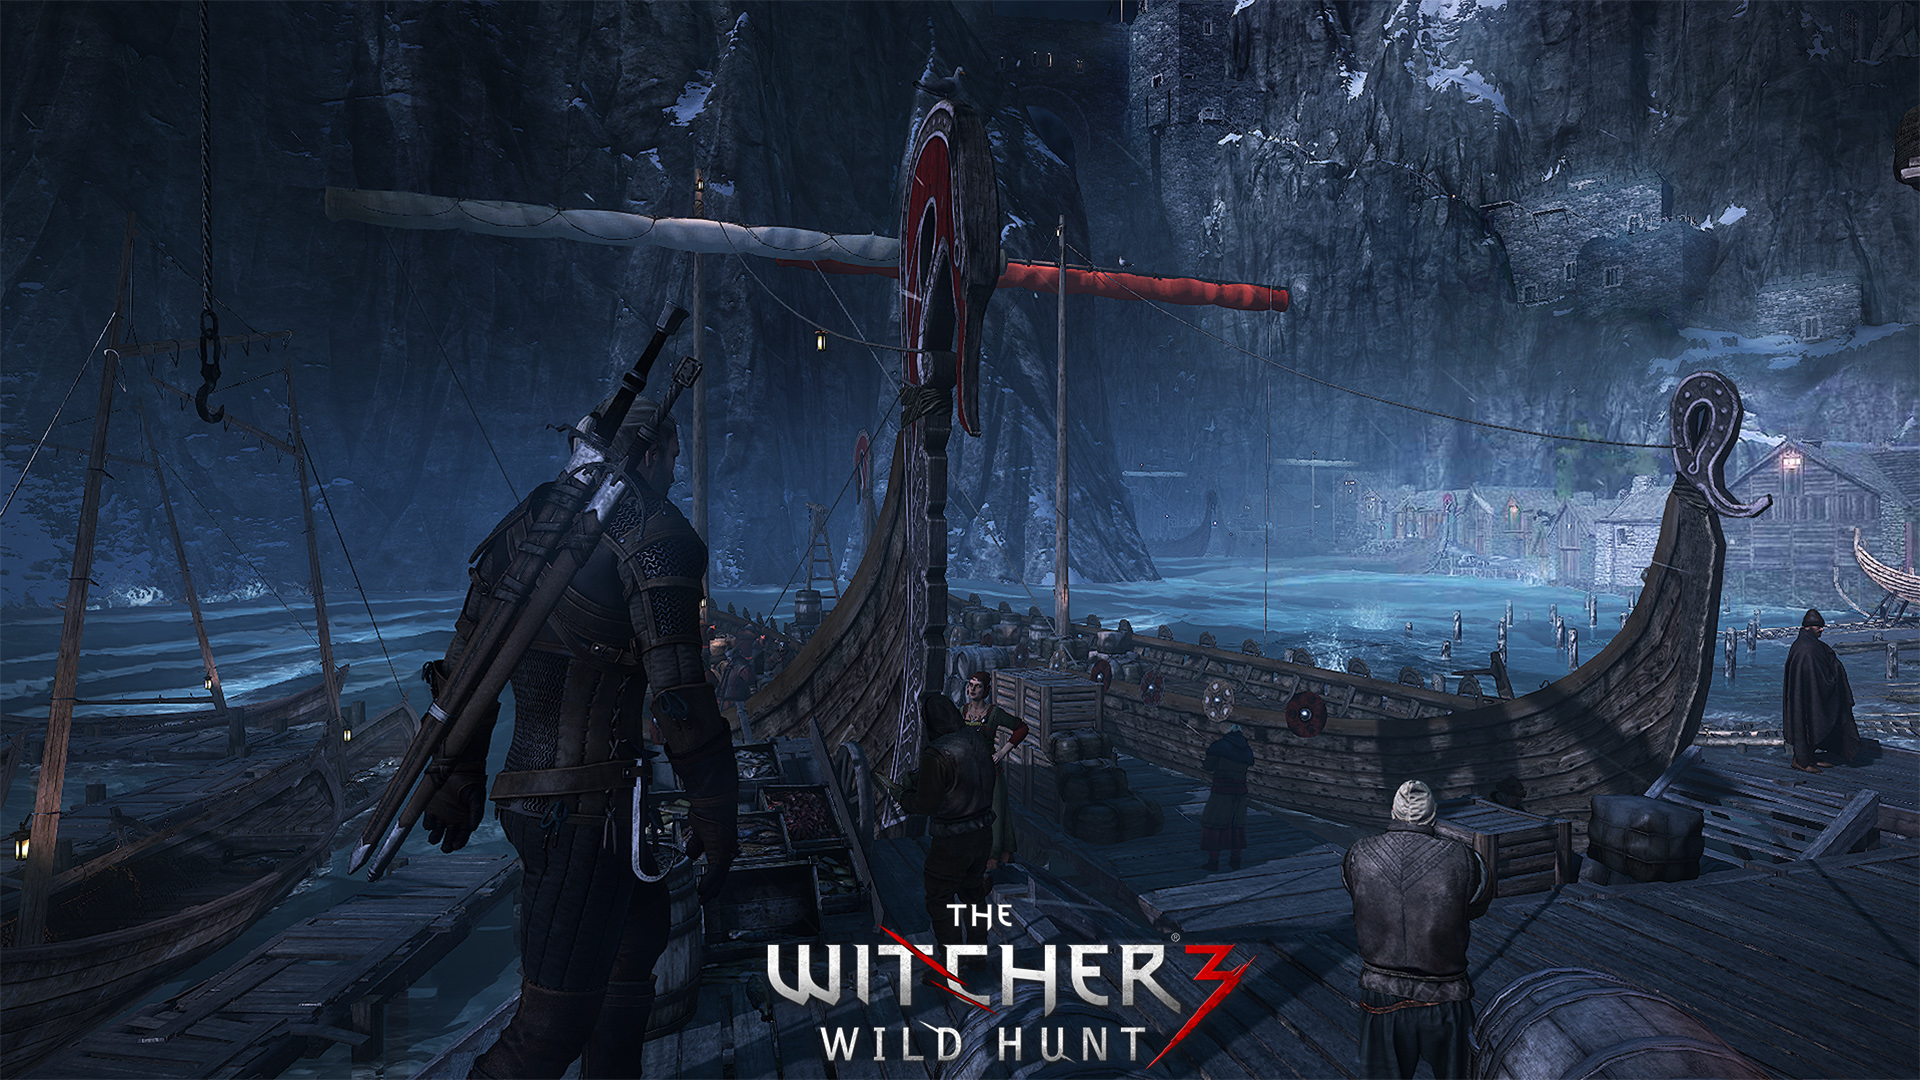 The Witcher 3 Wild Hunt Wallpapers 9